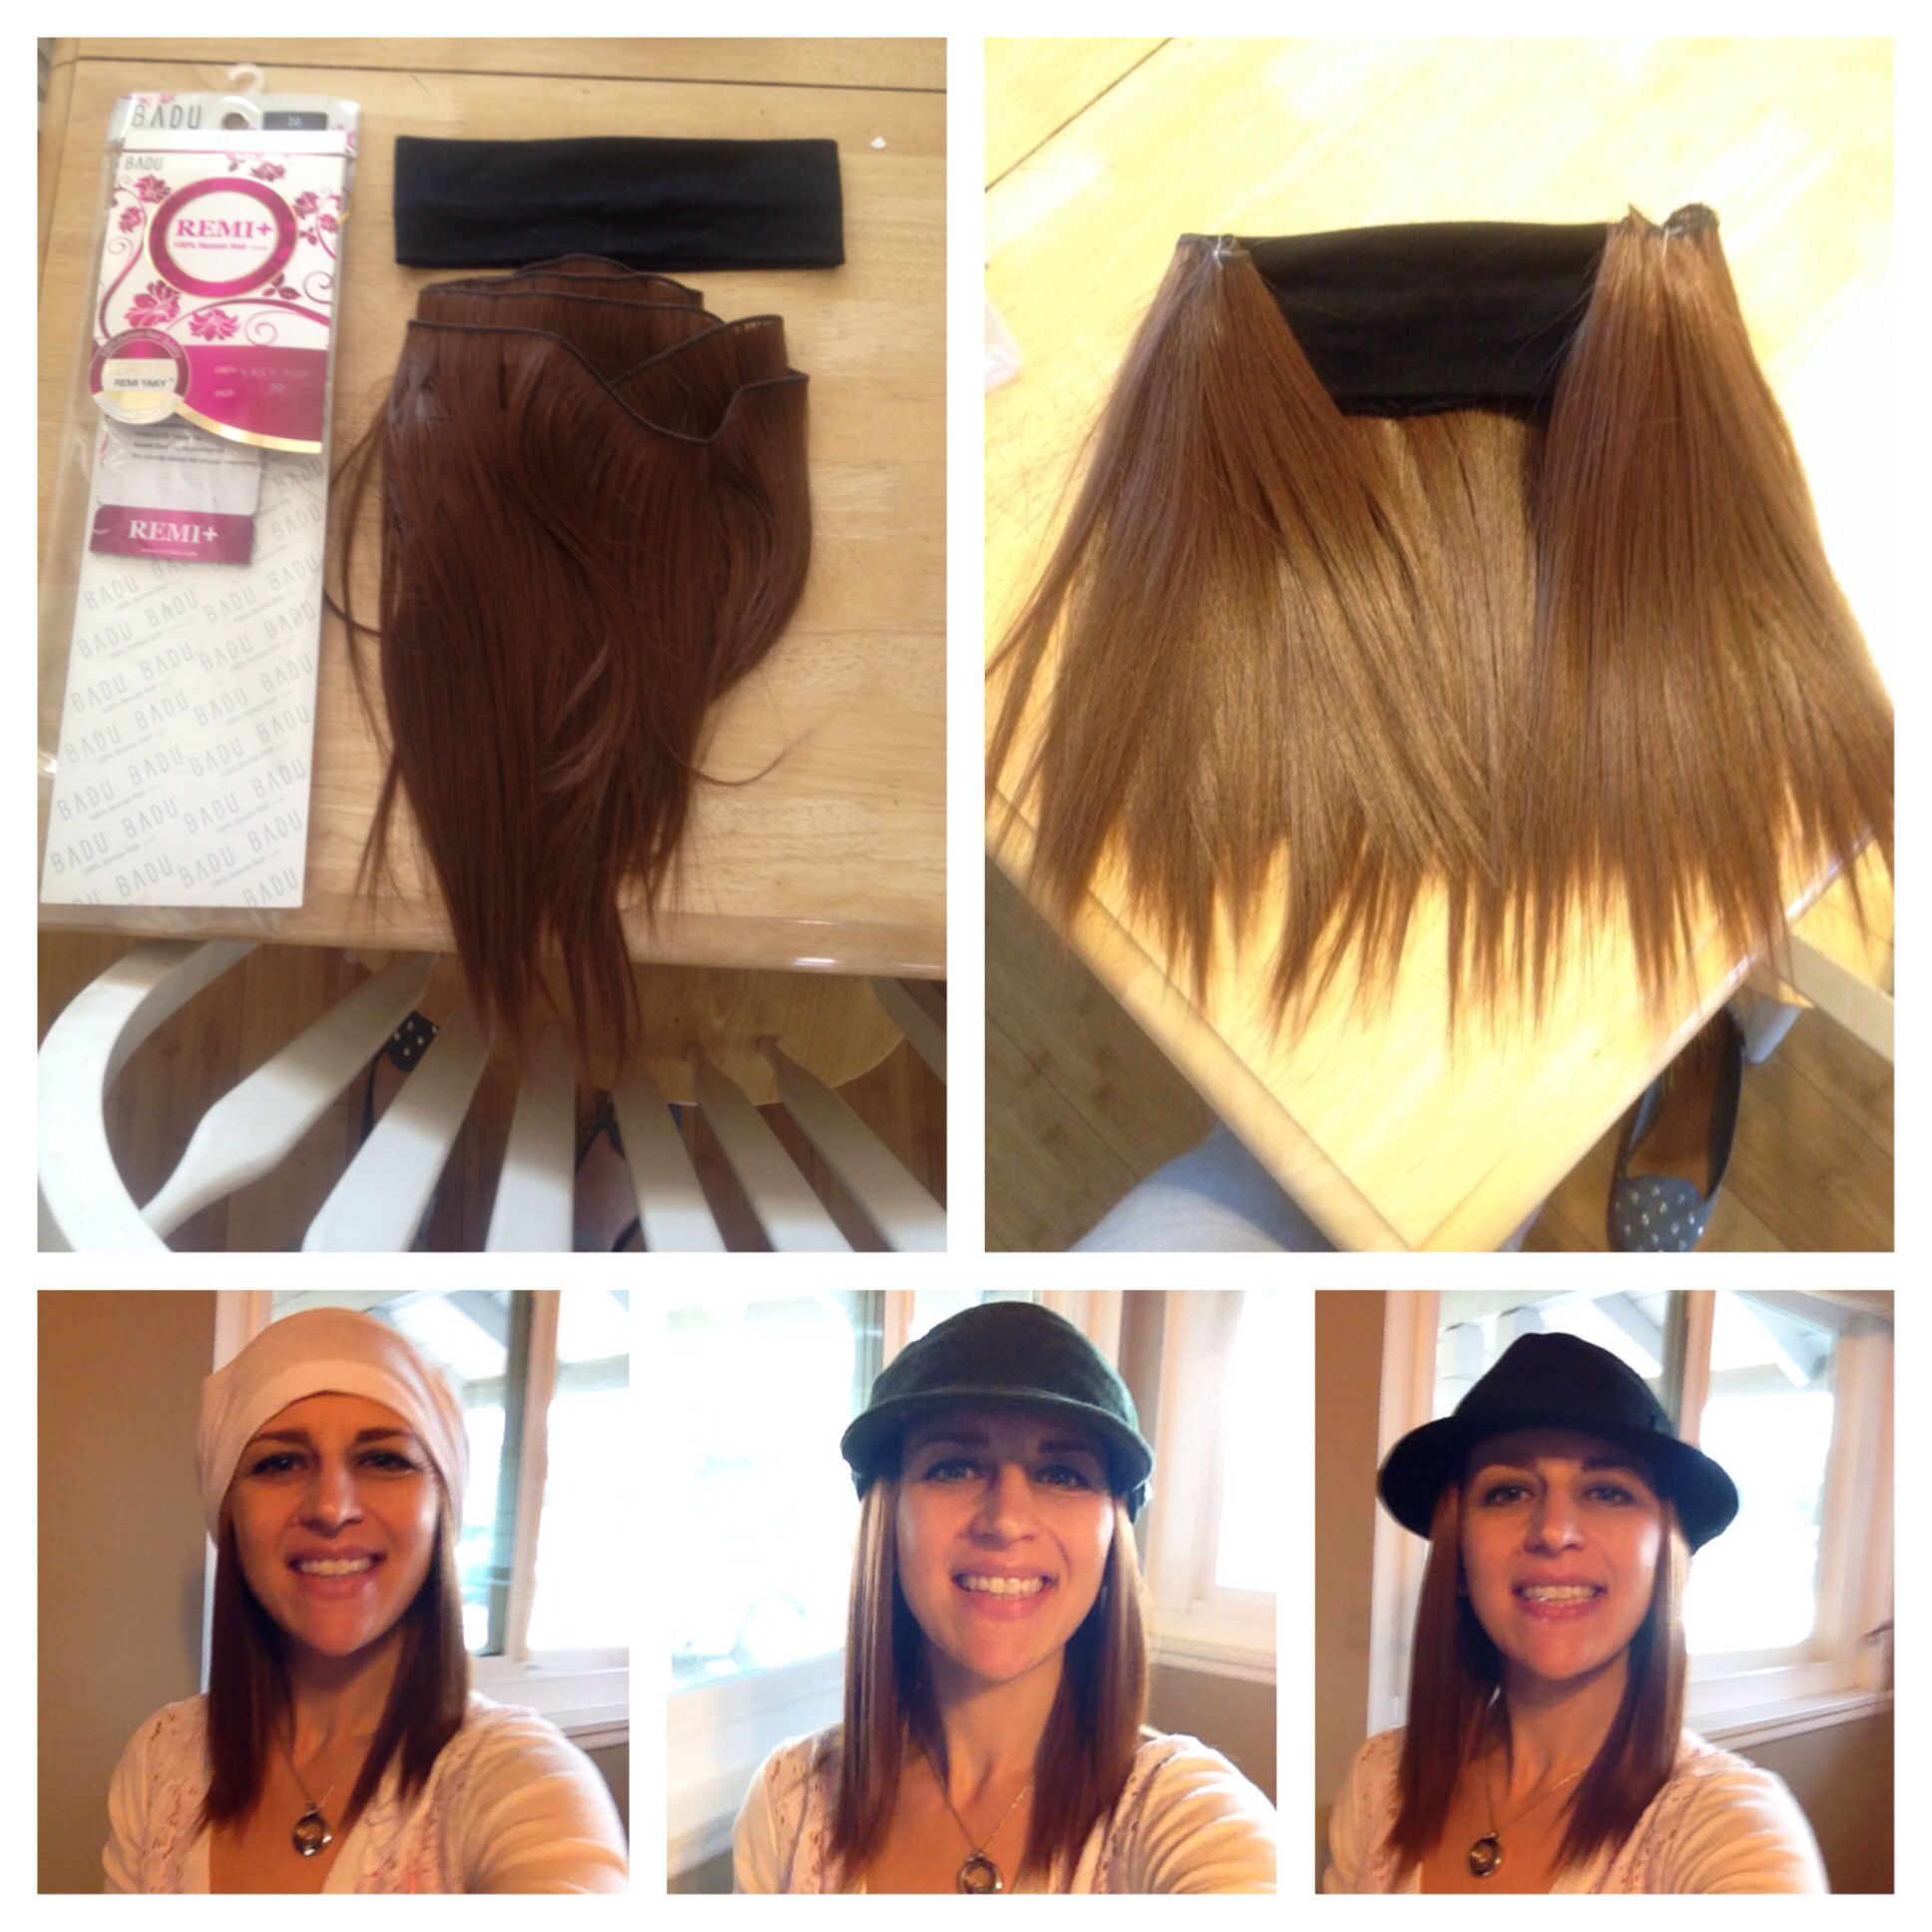 Diy Hair Headband To Wear With Hats After Chemo Purchase Hair Extensions And Sew Onto Cotton Headband Total Cost Chemo Hair Cancer Hair Headband Hairstyles